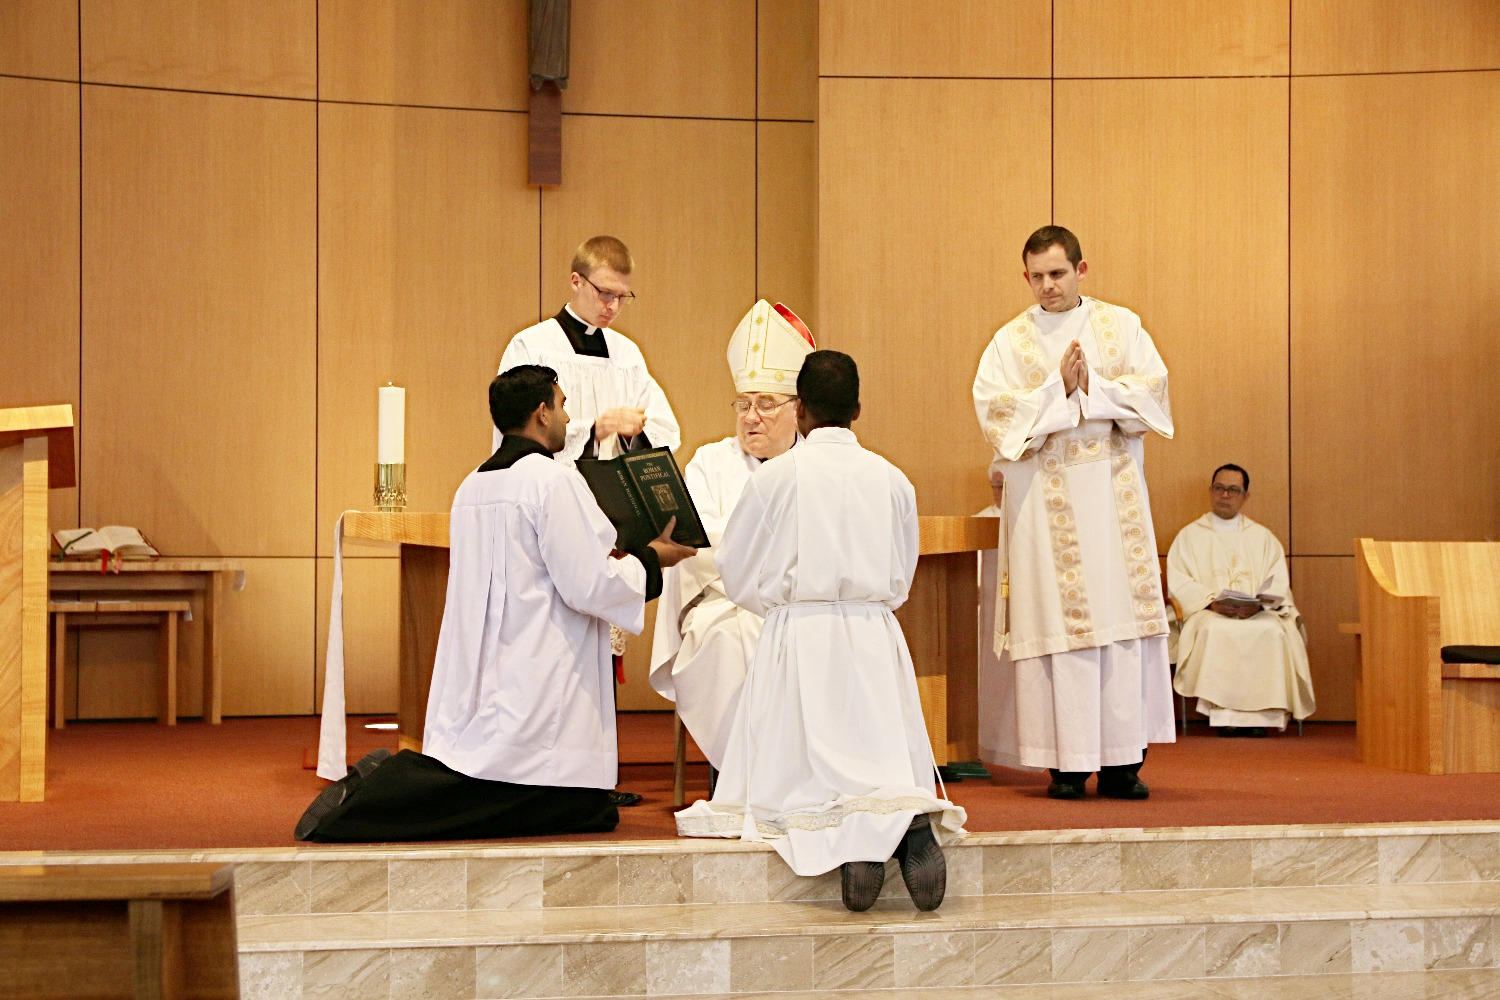 Ordination Liturgy - 3